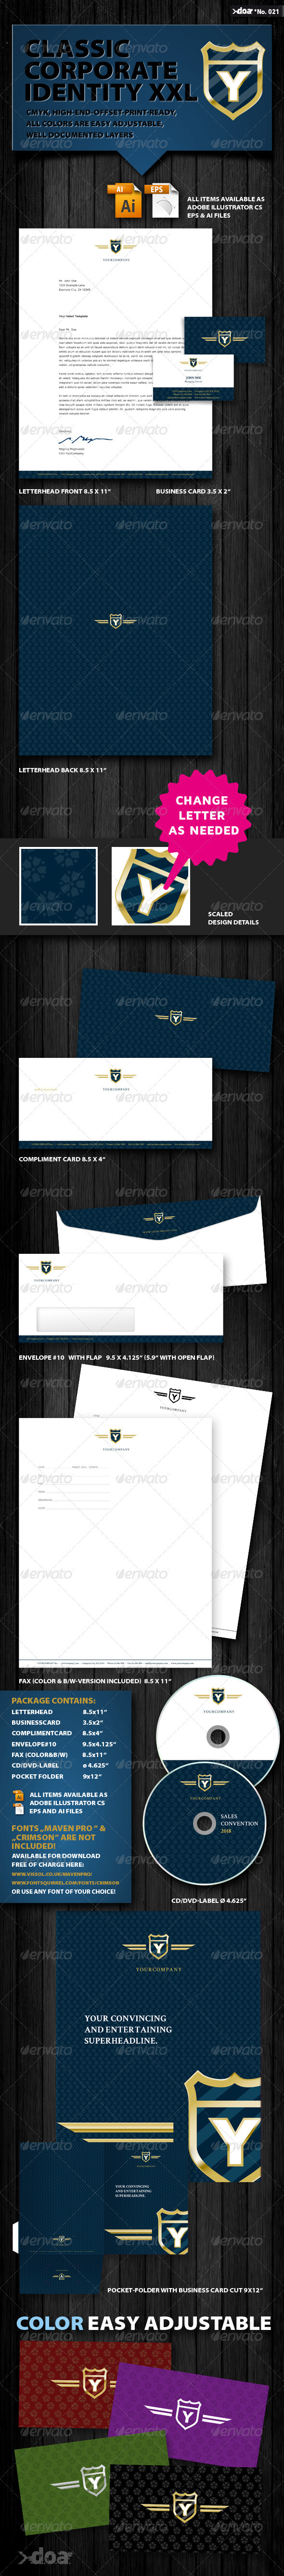 Classic Corporate Identity XXL - Stationery Print Templates